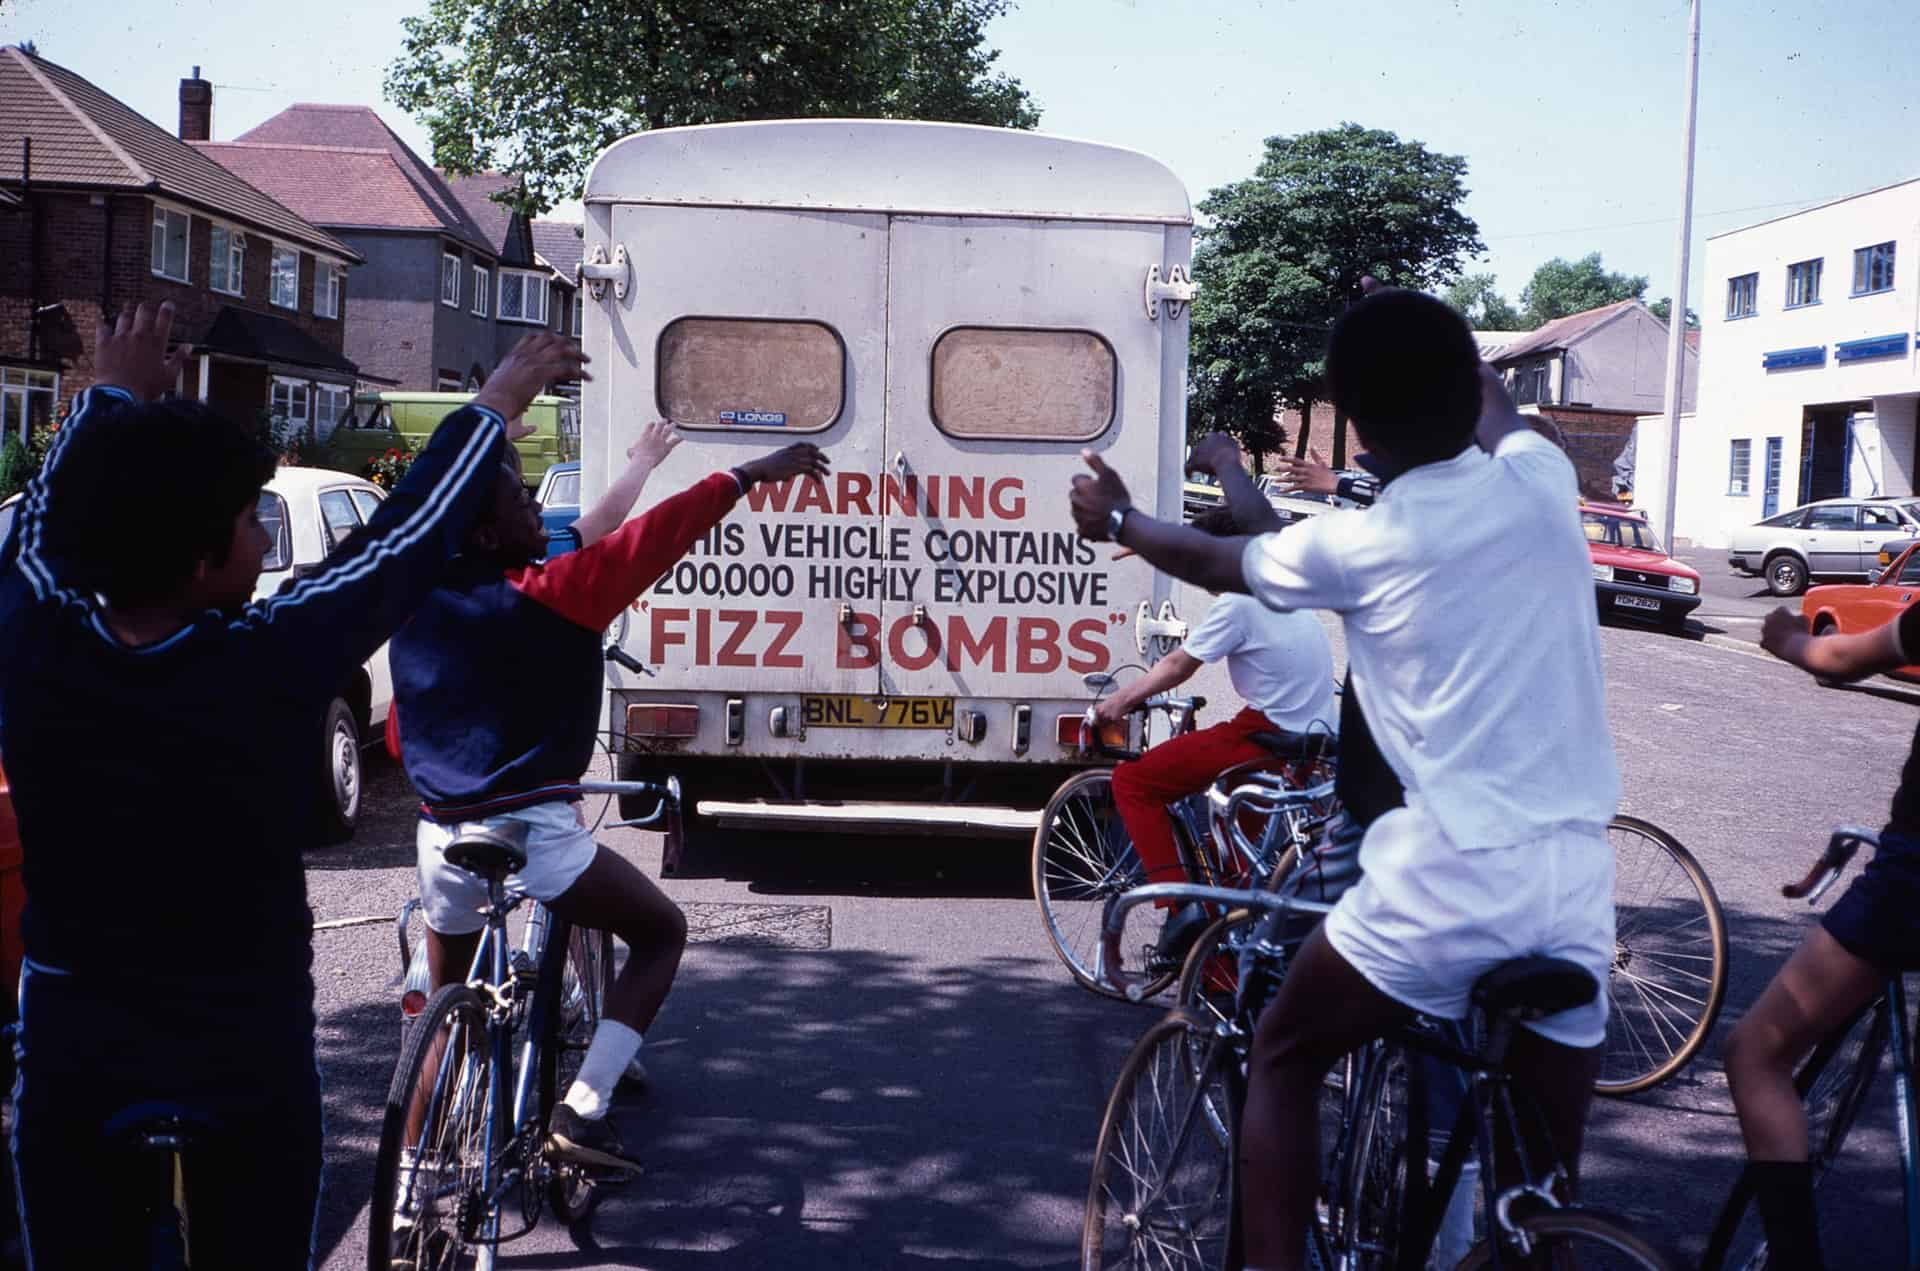 Boys from Holly Lodge High School with Fizz Bombs lorry. Roebuck Lane, West Bromwich. 1980s